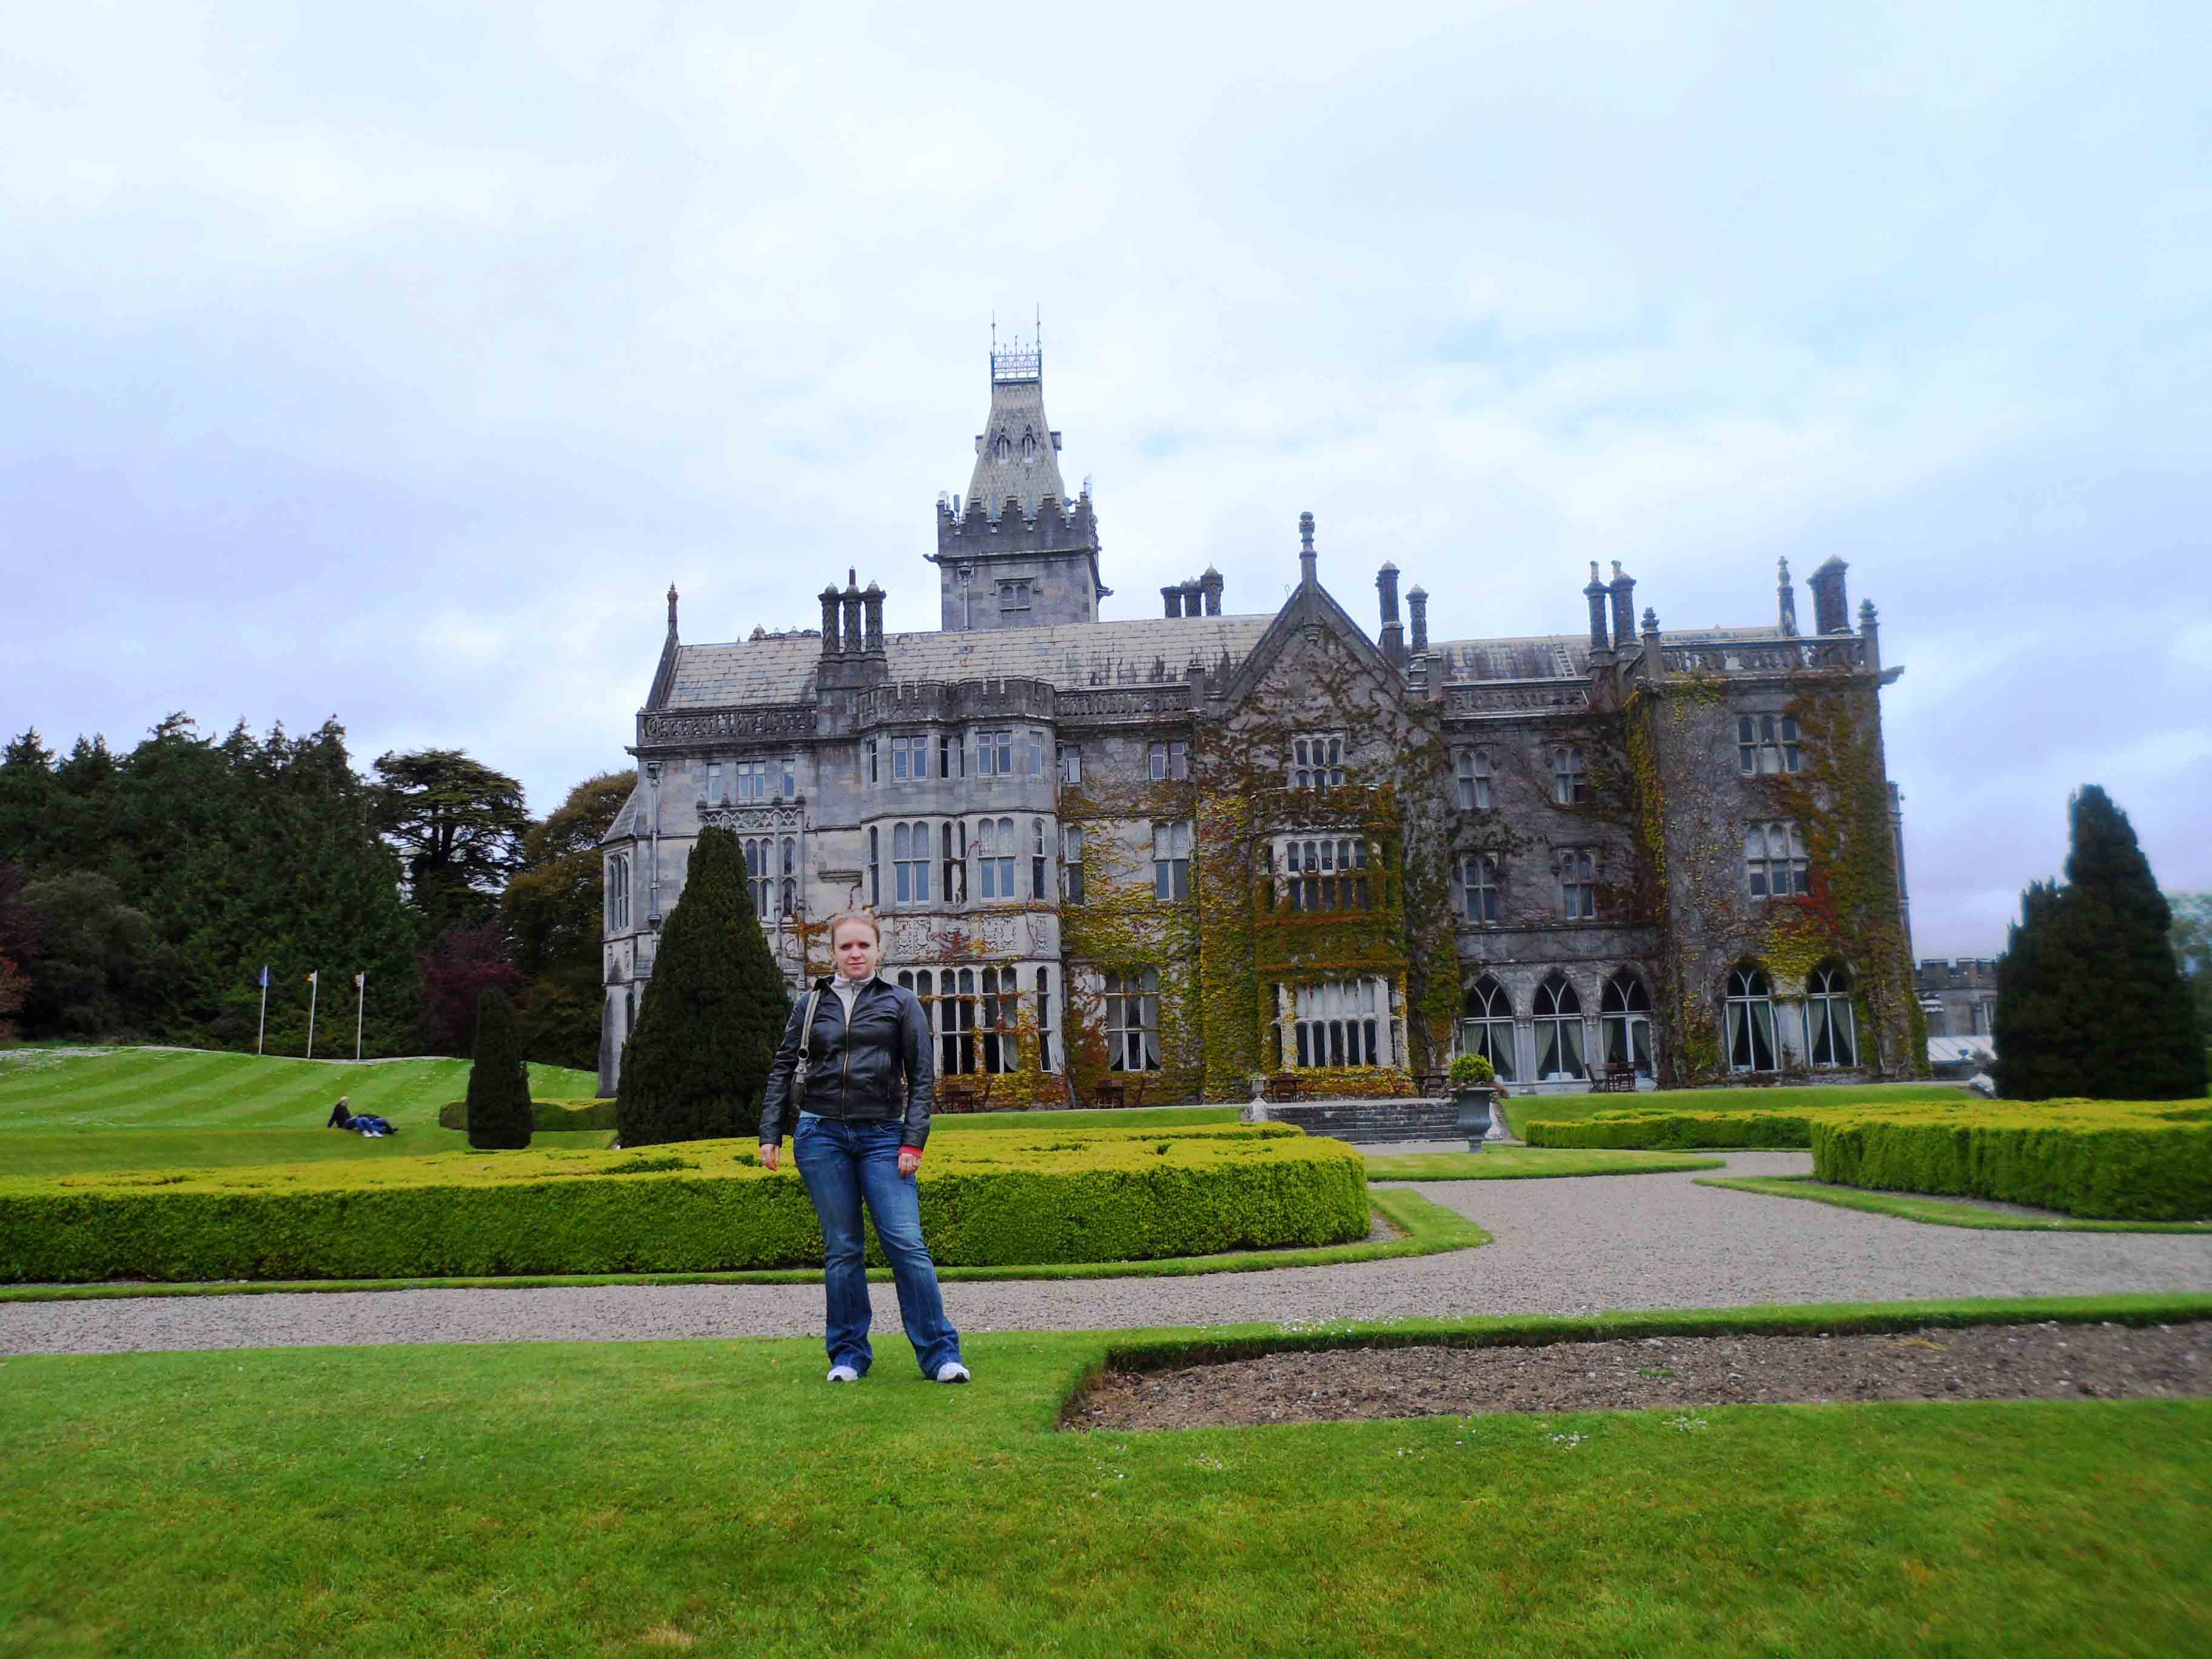 how to pick the the best hotel - Adare Manor, Luxury Castle Hotel in Ireland